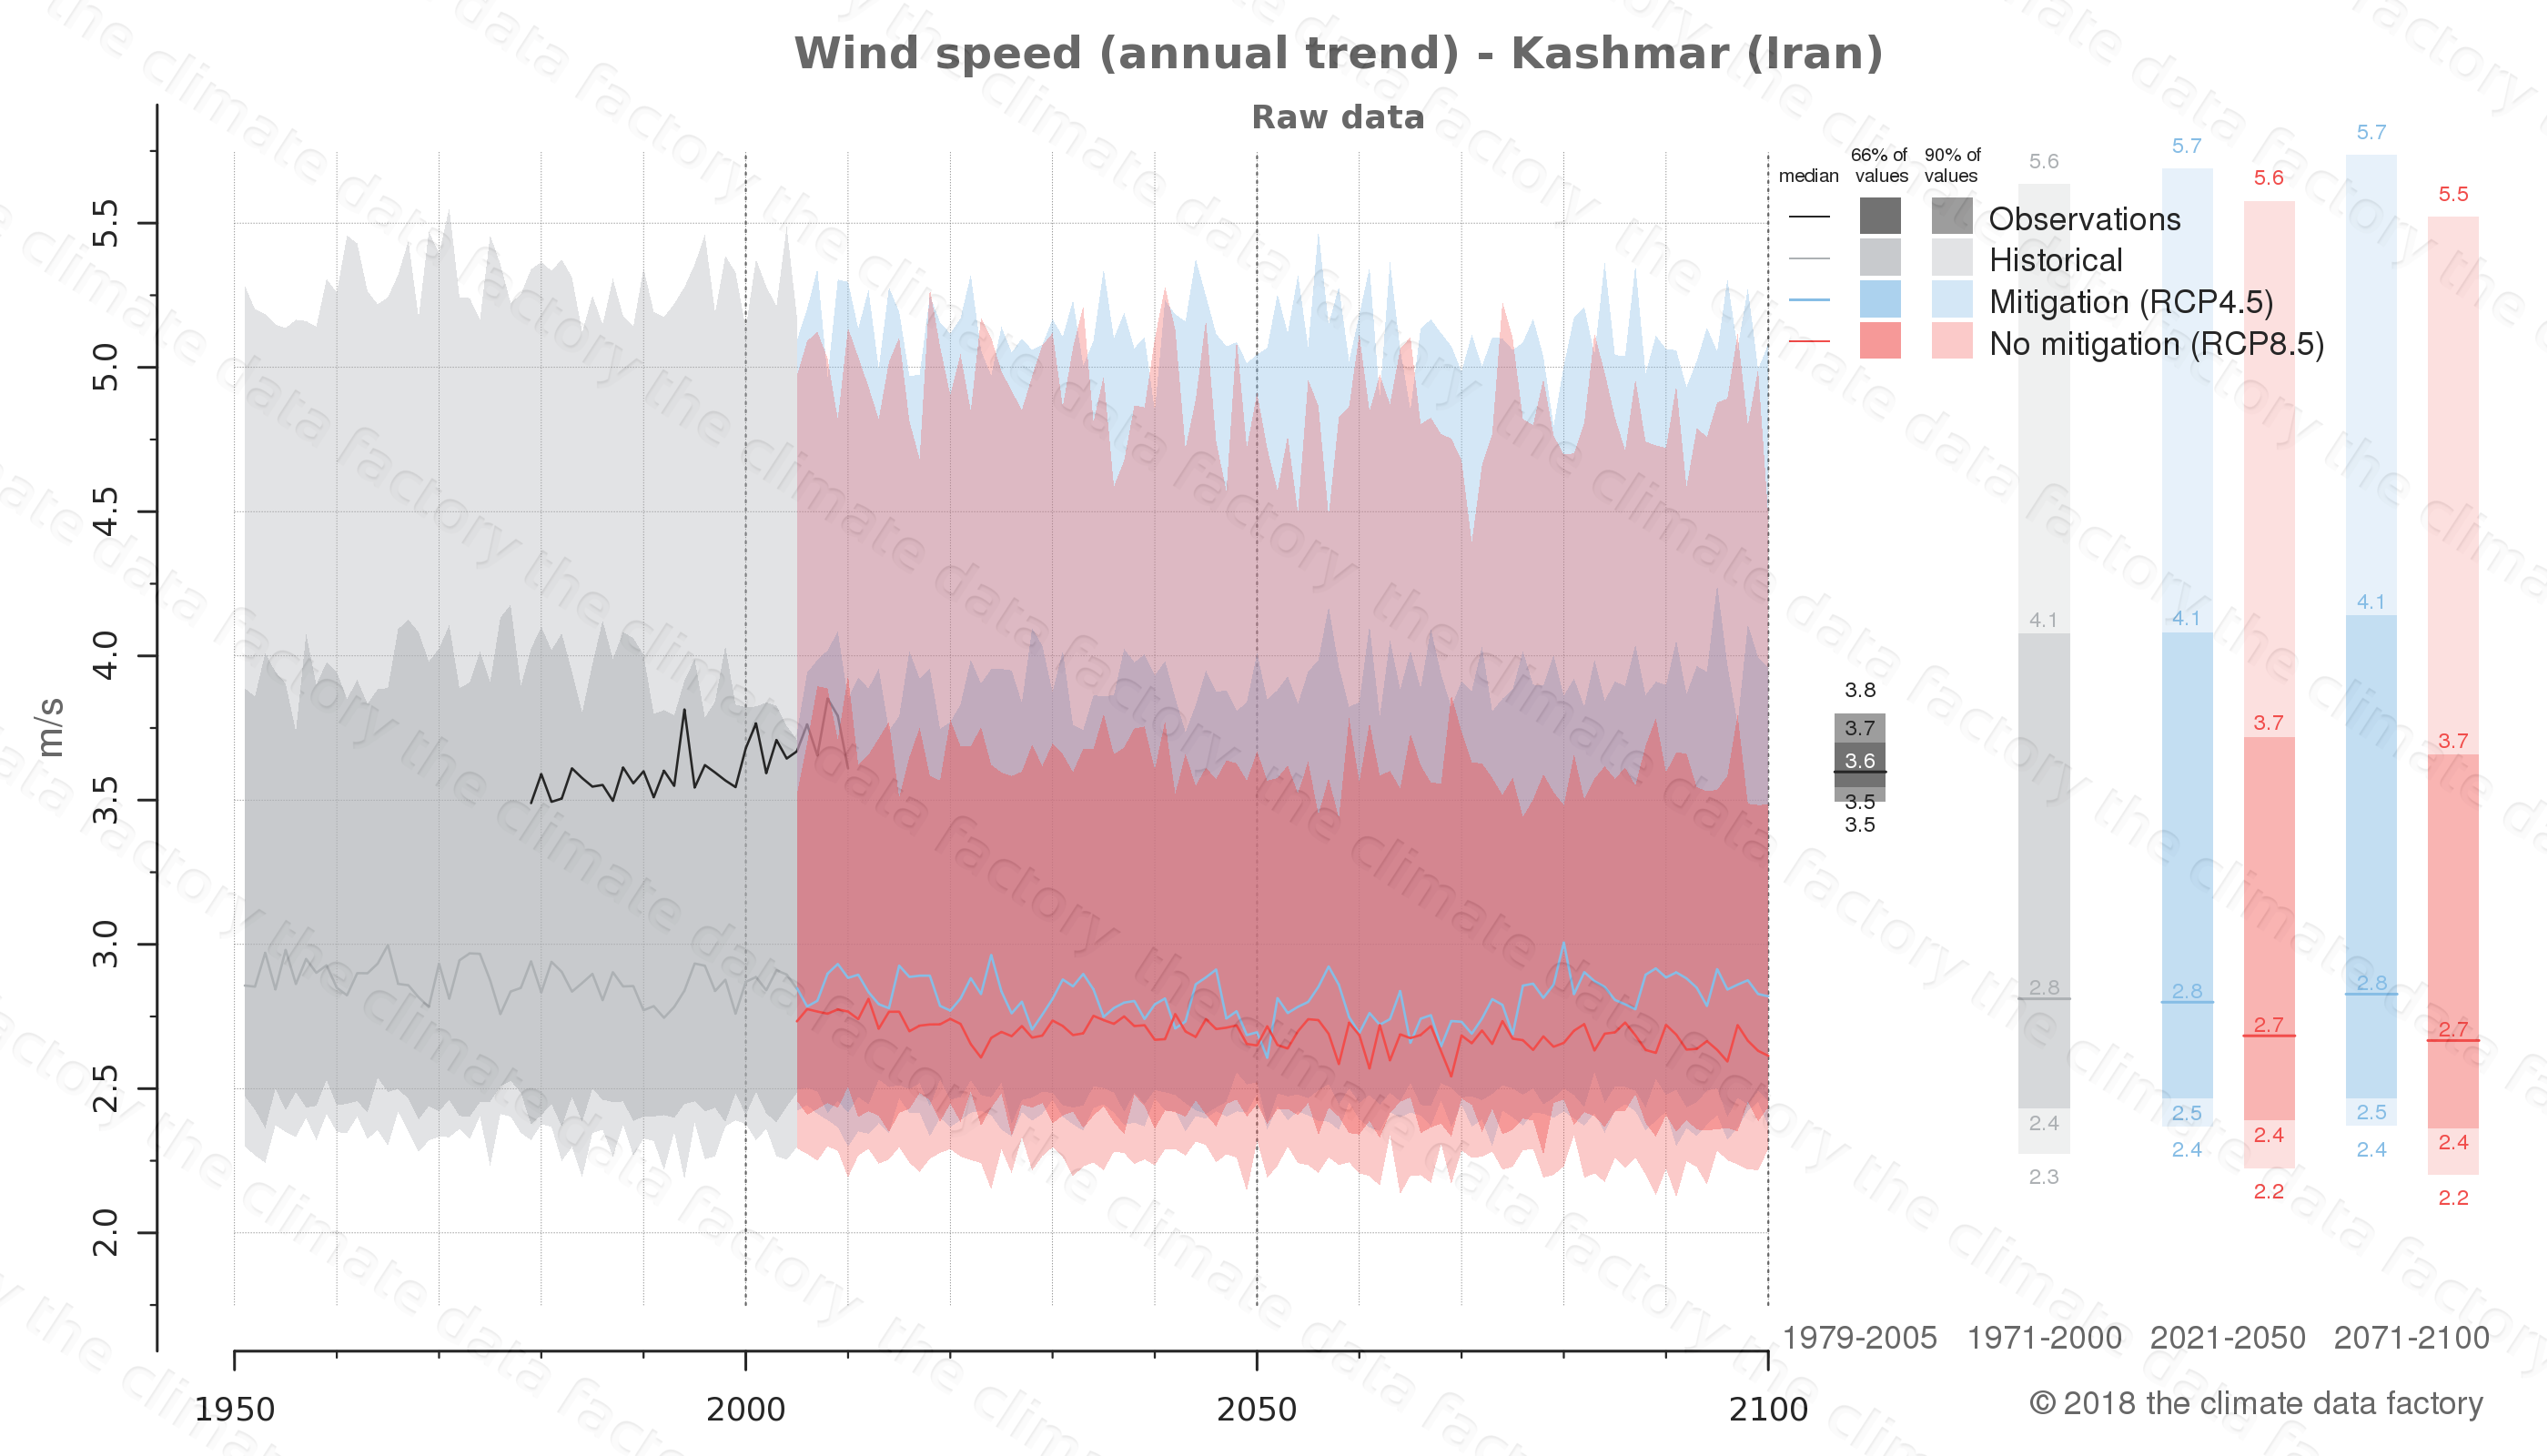 climate change data policy adaptation climate graph city data wind-speed kashmar iran